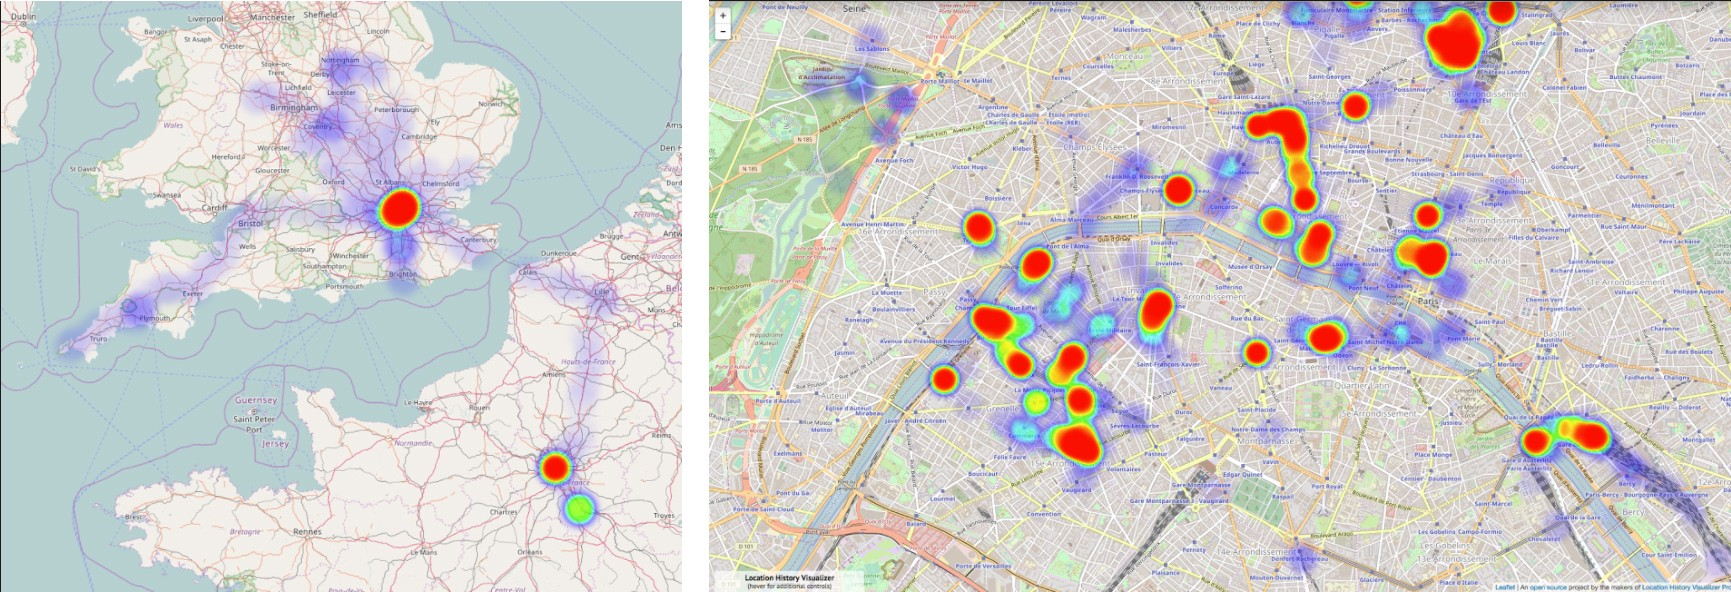 The heat map adjusts itself to the zoom factor. So many trips to Paris…